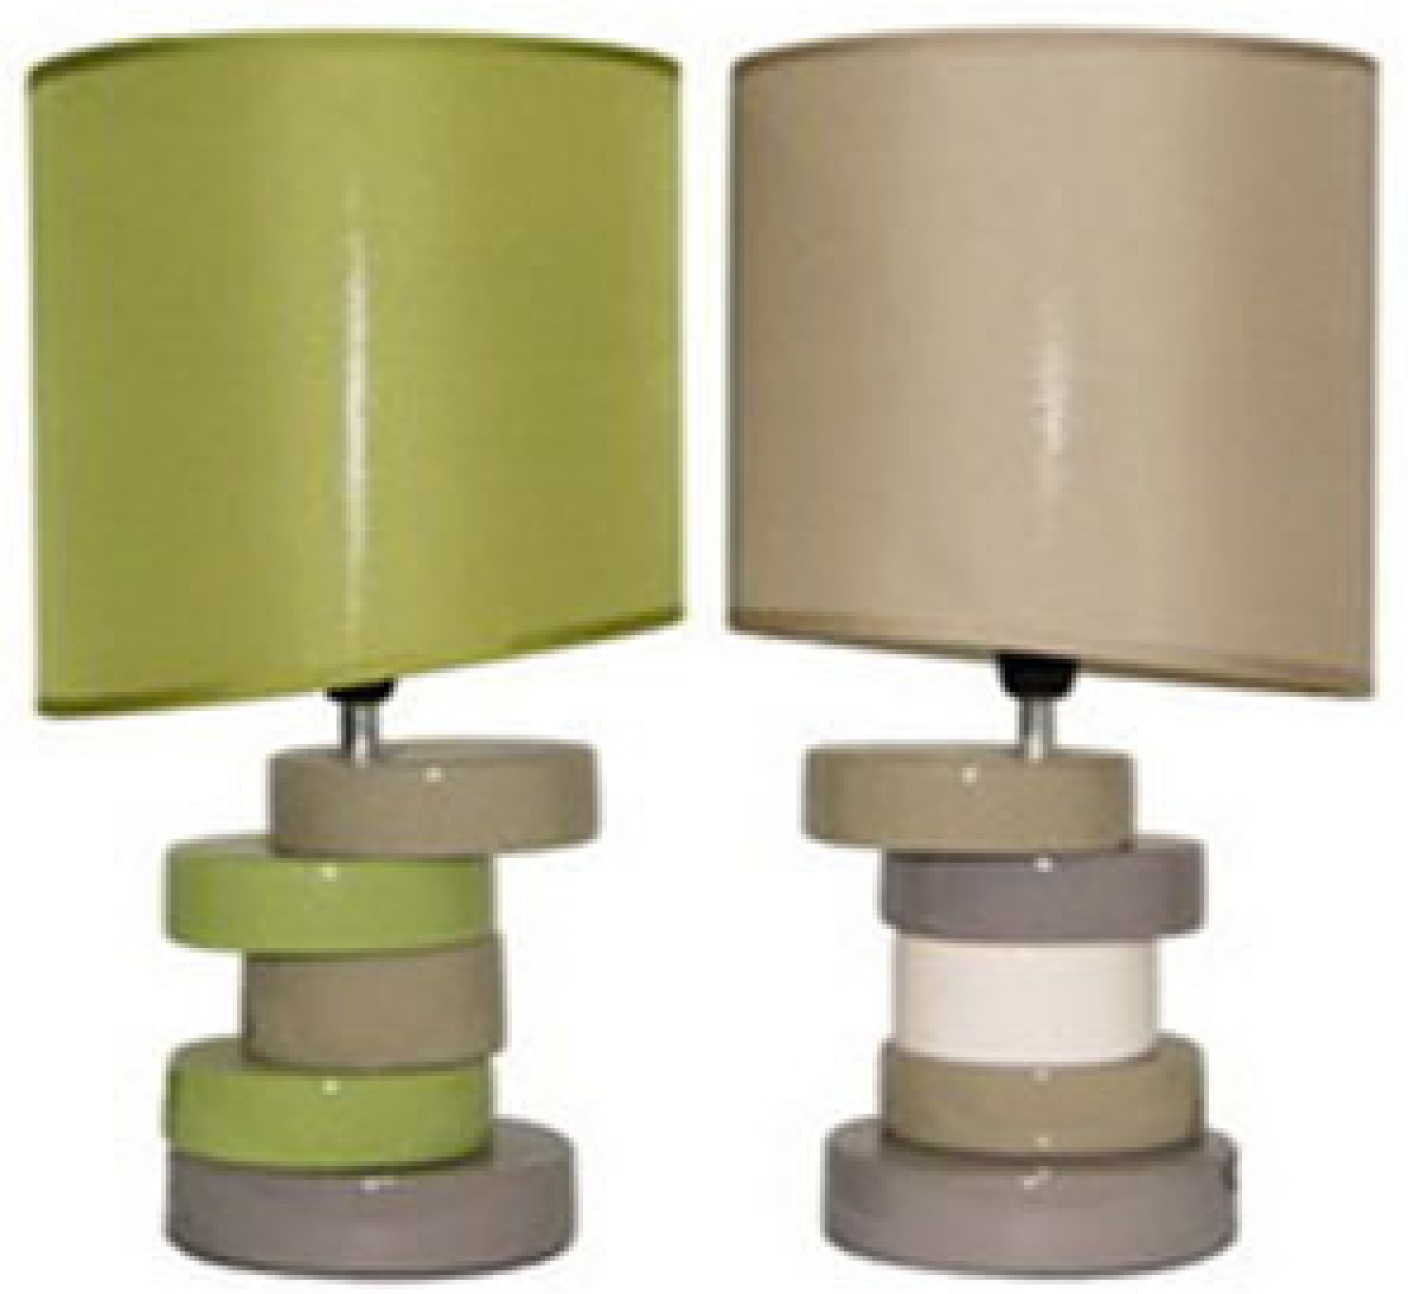 Archies umbra table lamp price in india buy archies for 100 watt table lamps uk